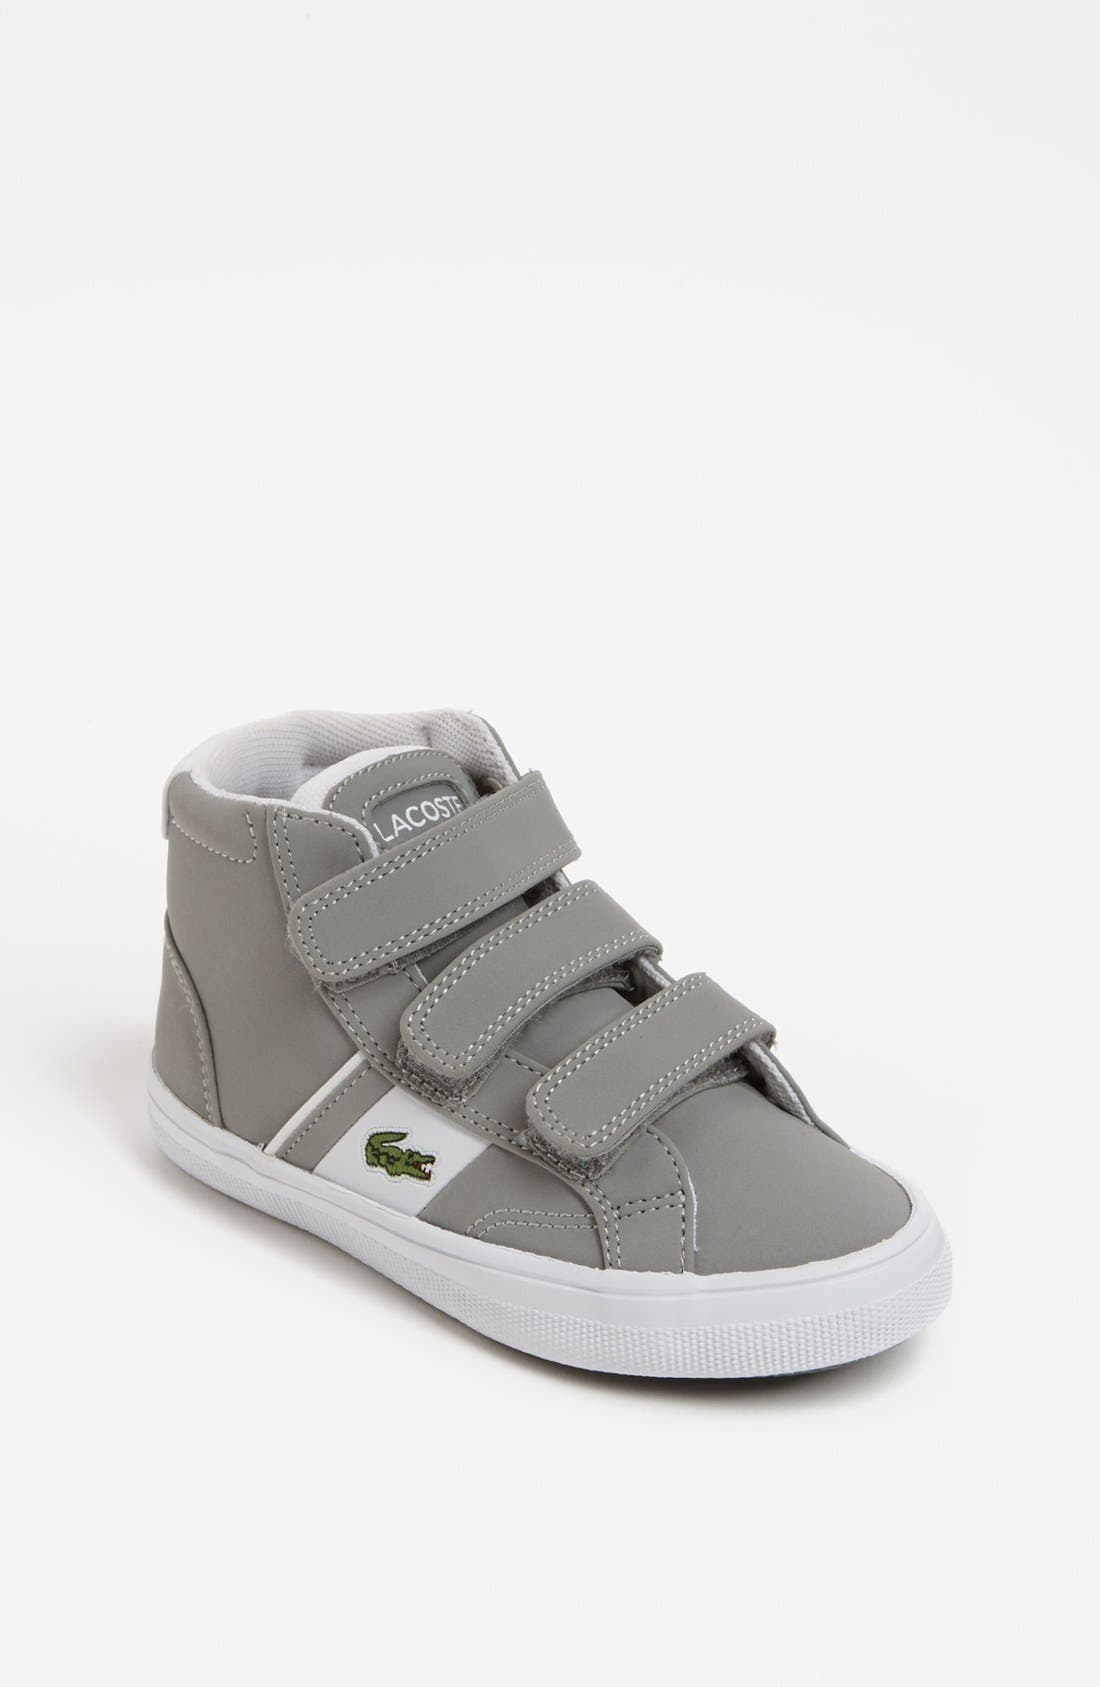 Alternate Image 1 Selected - Lacoste 'Fairlead' Mid Sneaker (Toddler)